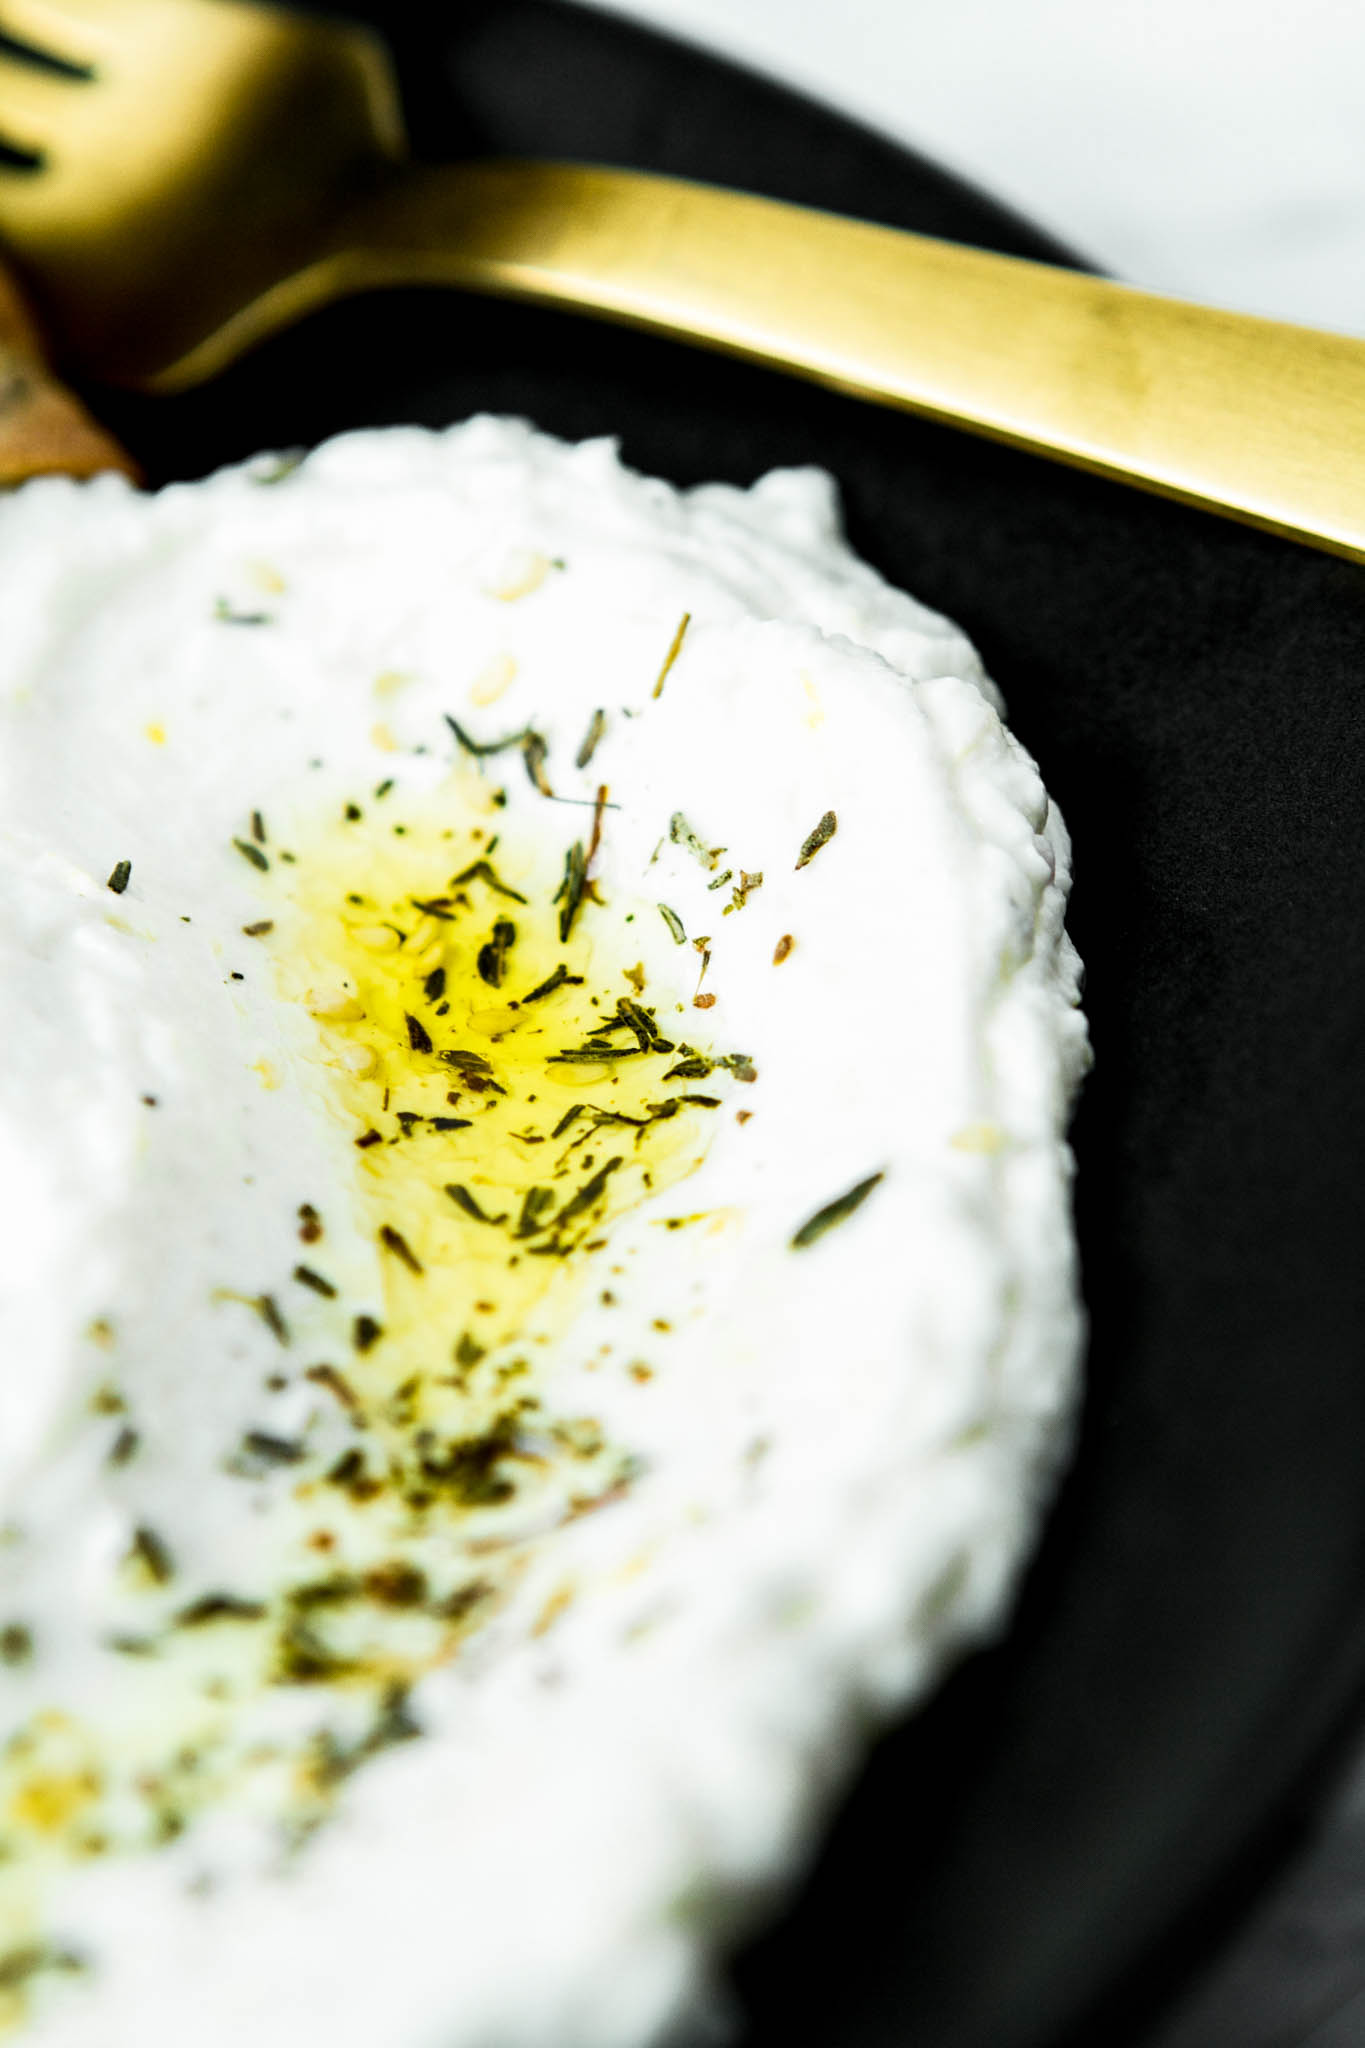 Photograph of homemade labneh spread on a plate with pita bread